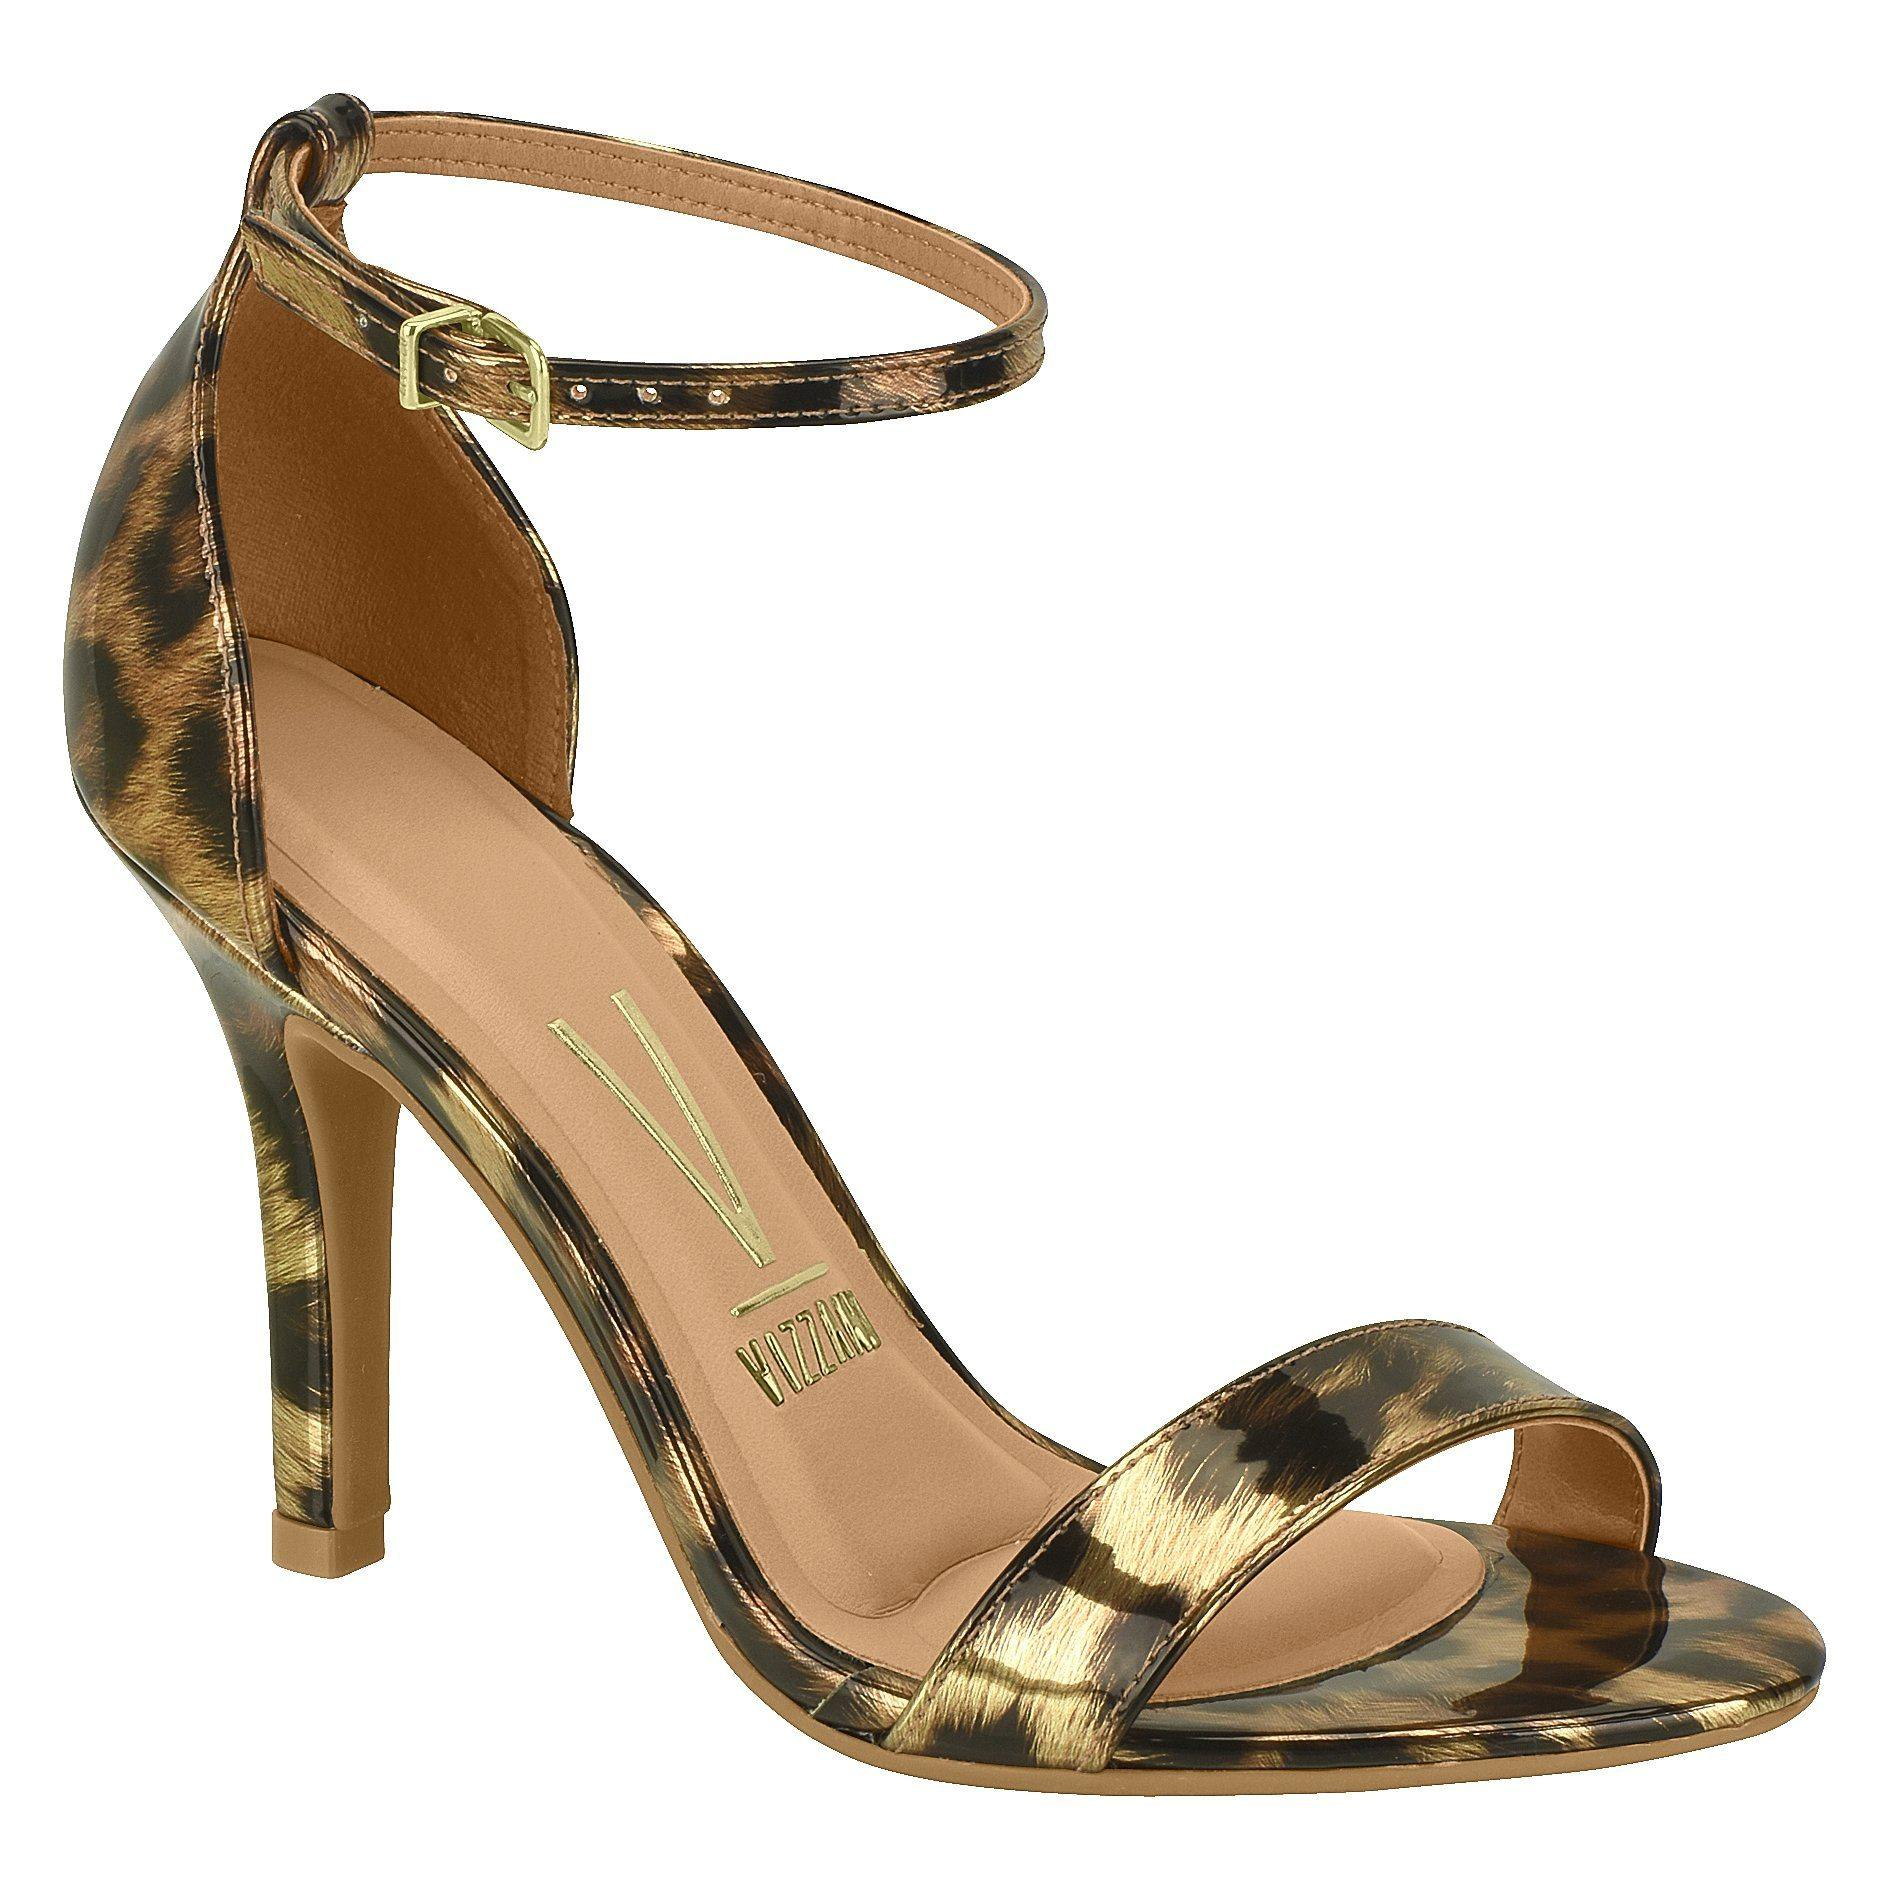 Vizzano 6249-452 High Heel Sandal in Leopard